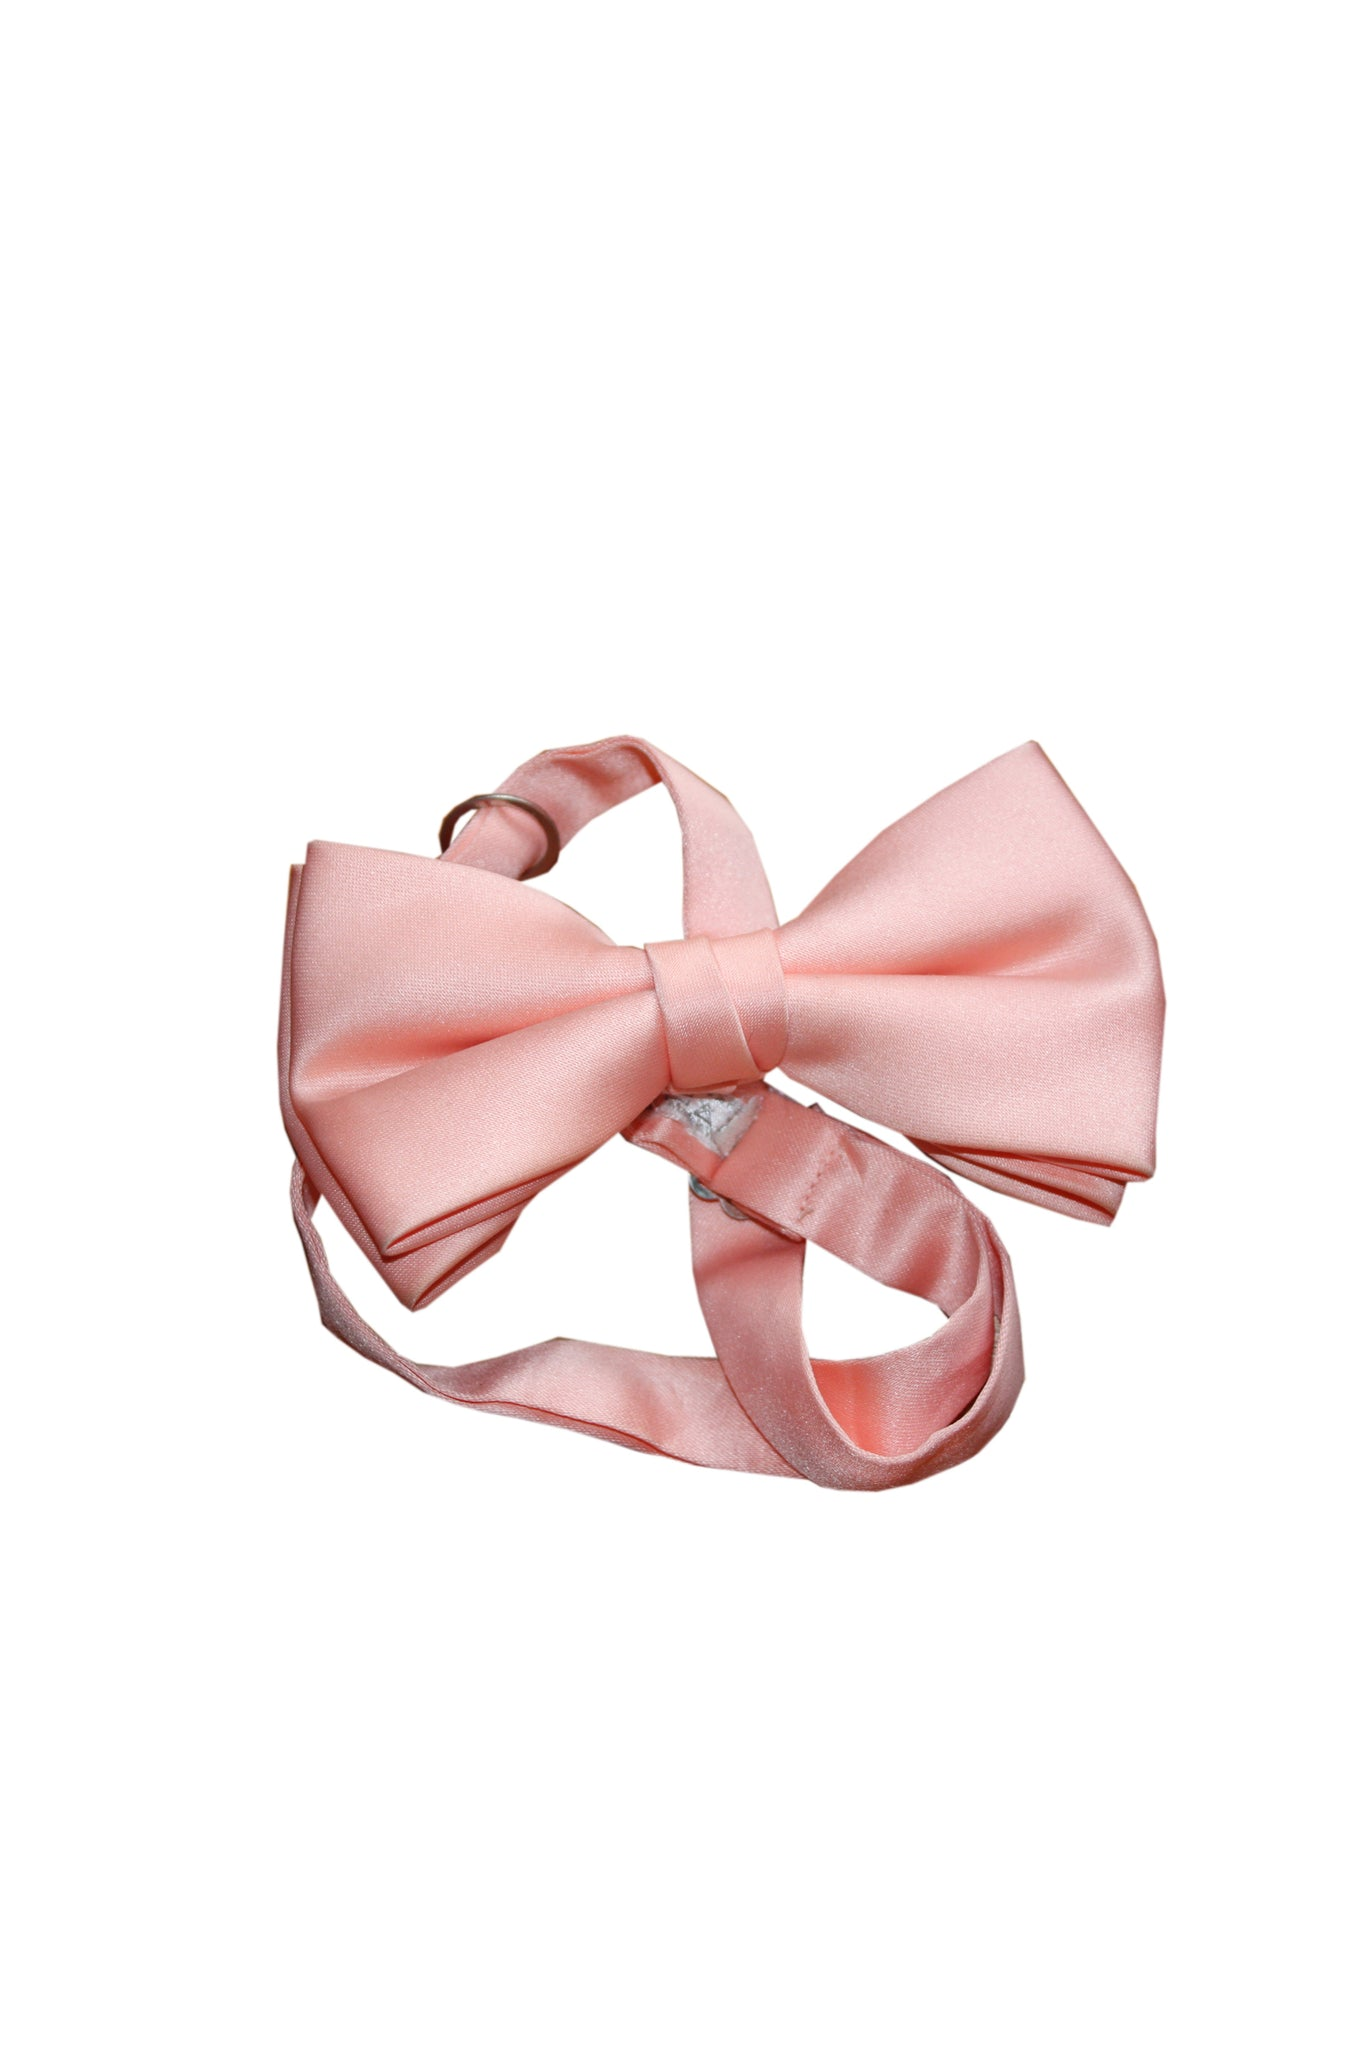 Vintage pink bow tie - SoLovesvintage